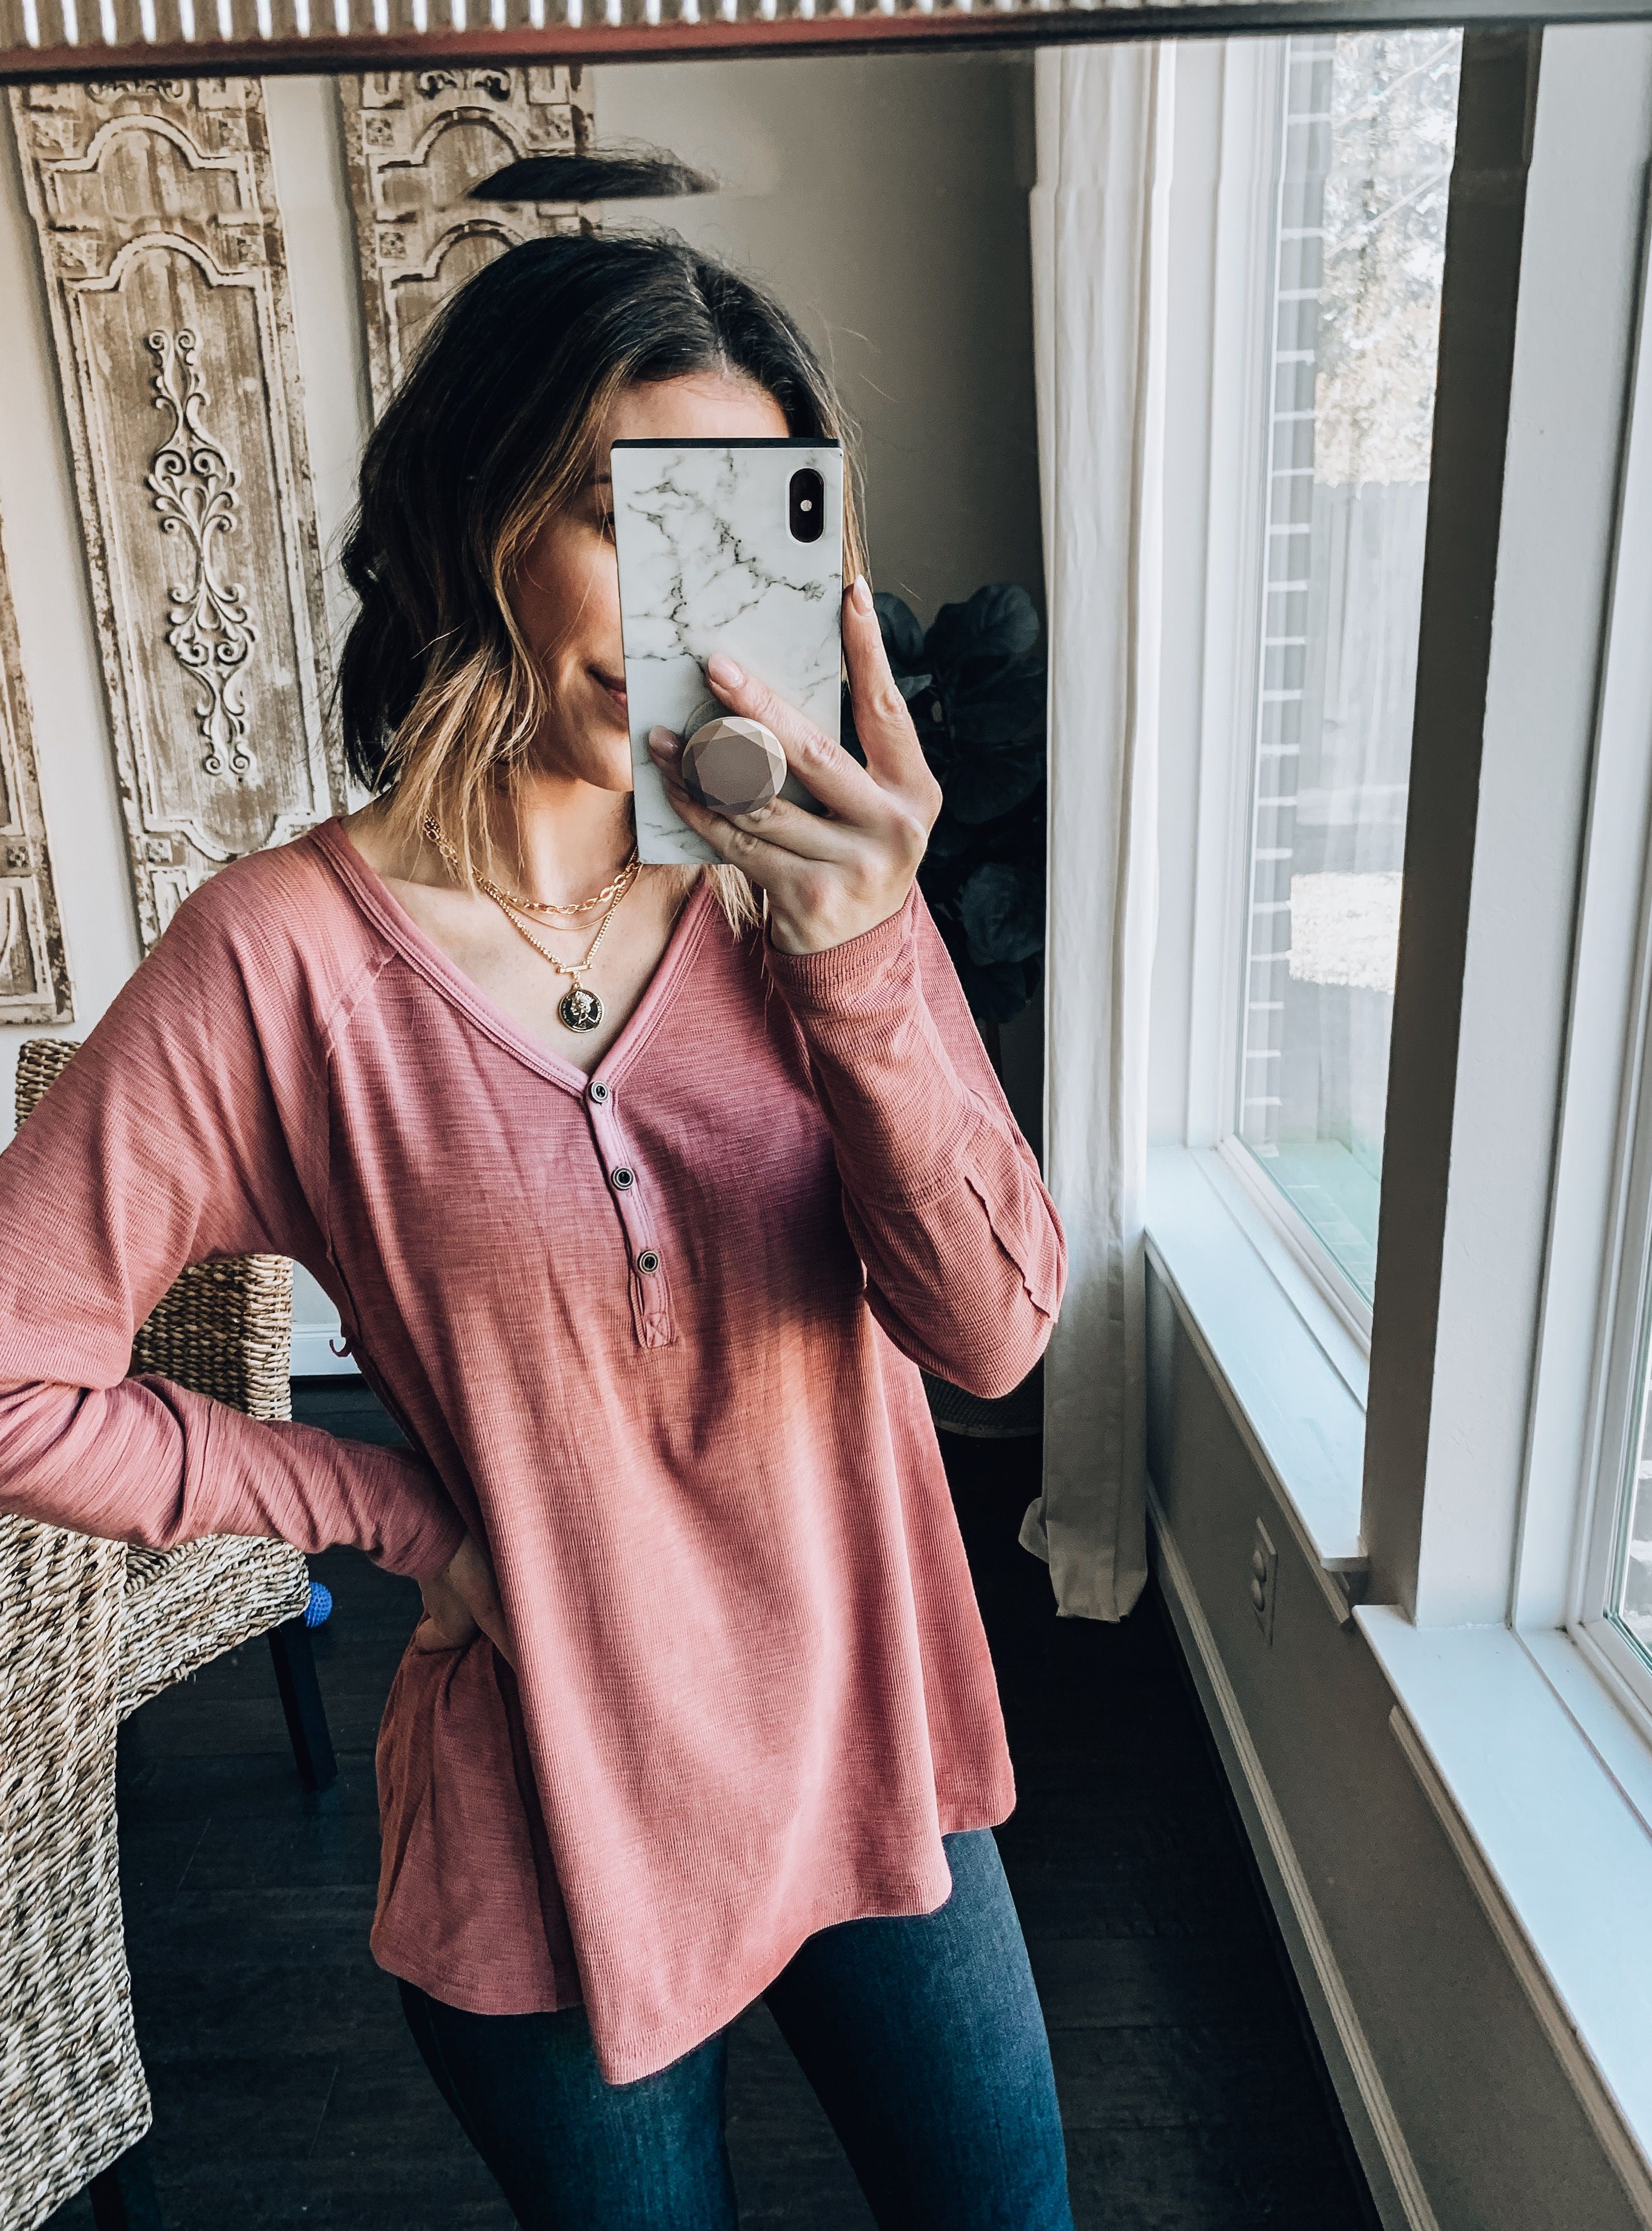 Amazon fall fashion haul october 2019 with images